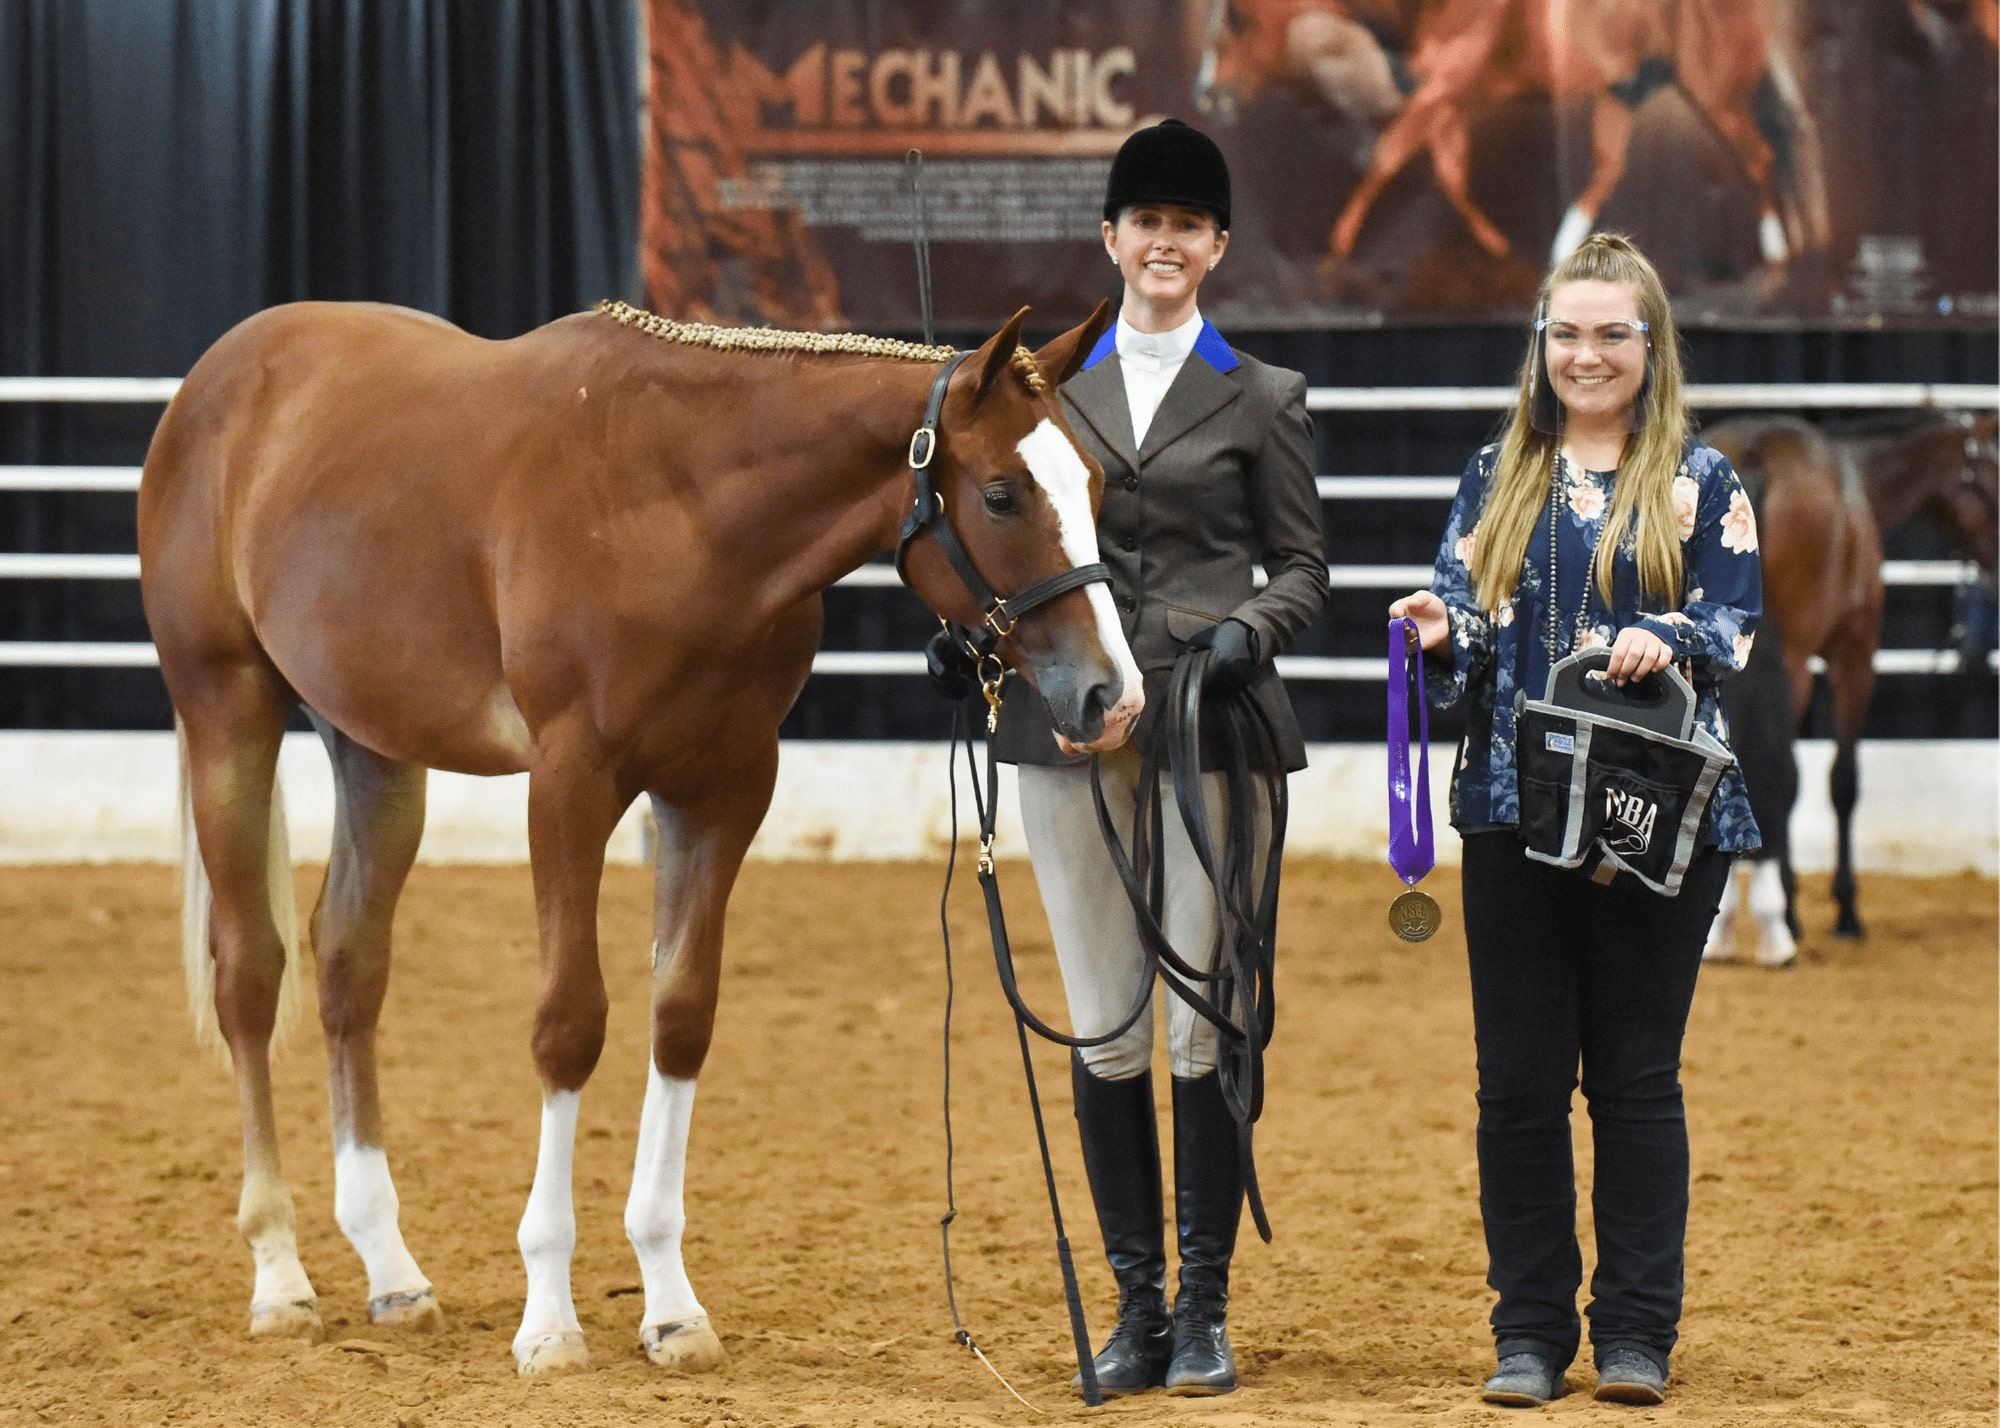 A horse and exhibitor standing for review during a showmanship class